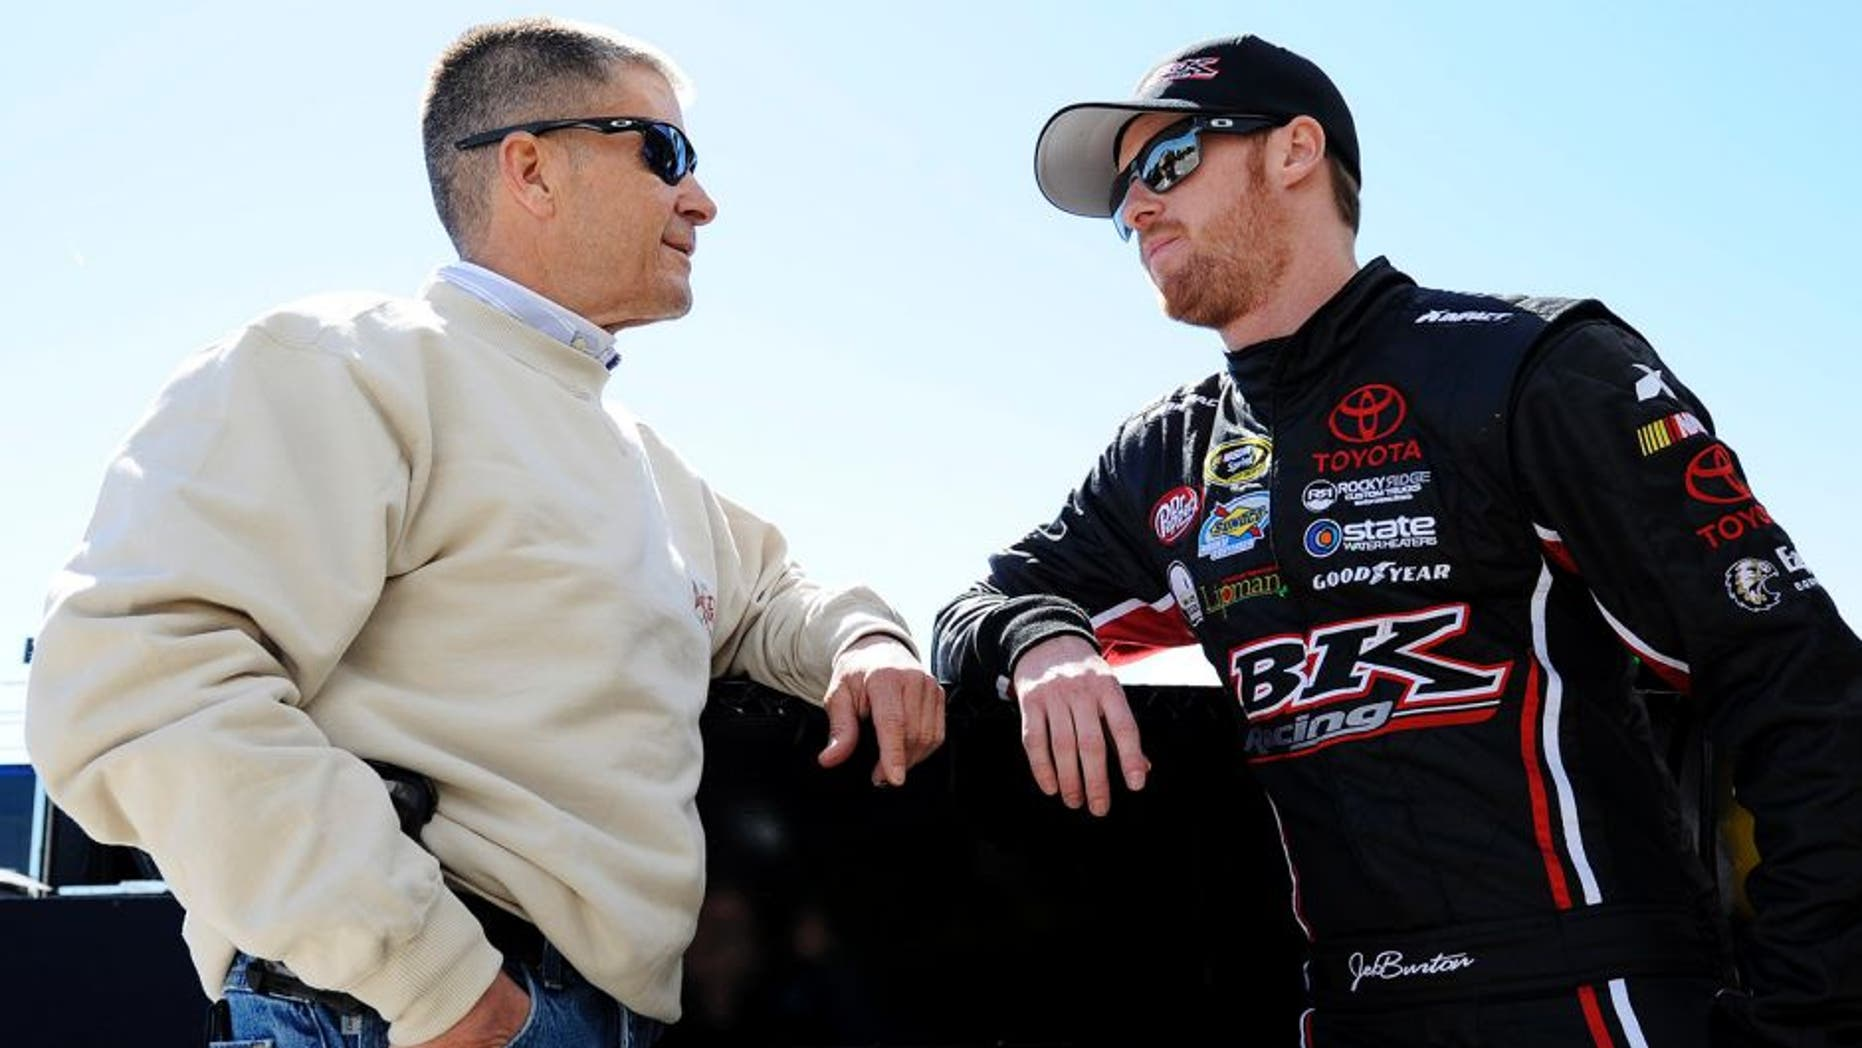 DAYTONA BEACH, FL - FEBRUARY 19: Jeb Burton, driver of the #26 LiveDeal.com Download the App Toyota, talks to his father Ward Burton in the garage area during practice for the NASCAR Sprint Cup Series 57th Annual Daytona 500 at Daytona International Speedway on February 19, 2015 in Daytona Beach, Florida. (Photo by Jared C. Tilton/Getty Images)